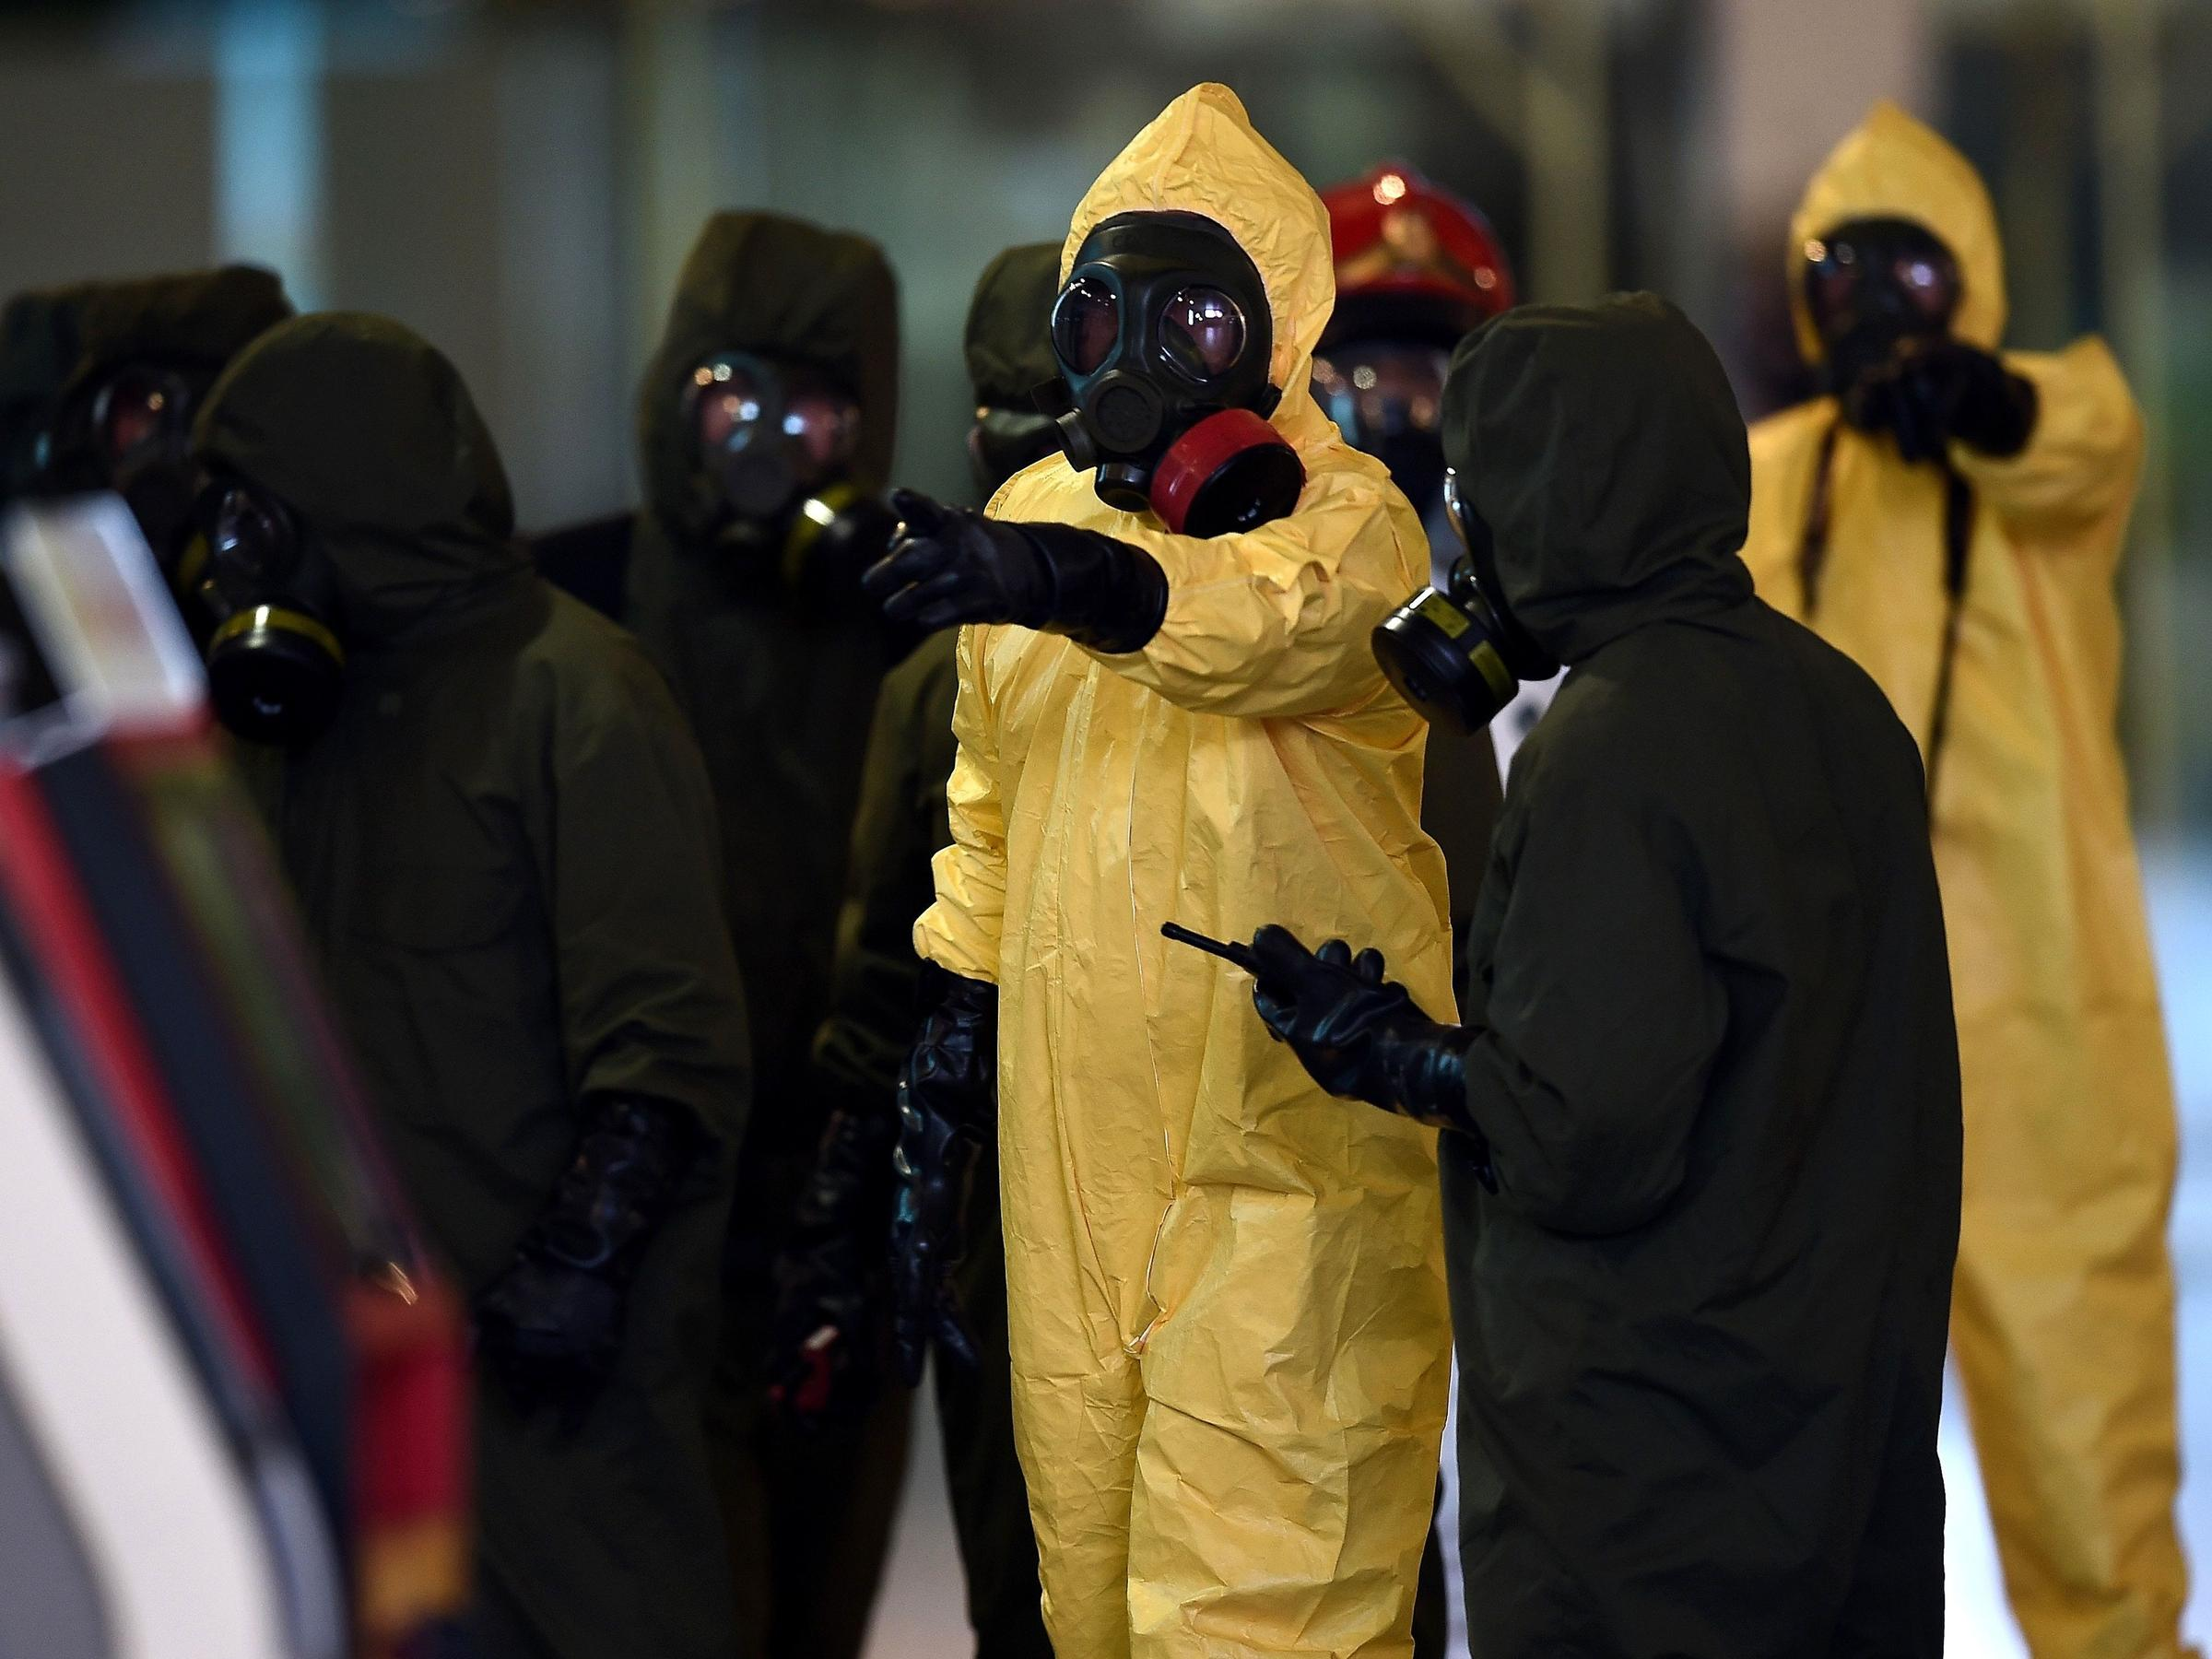 Who produced the VX poison that killed Kim Jong-nam?